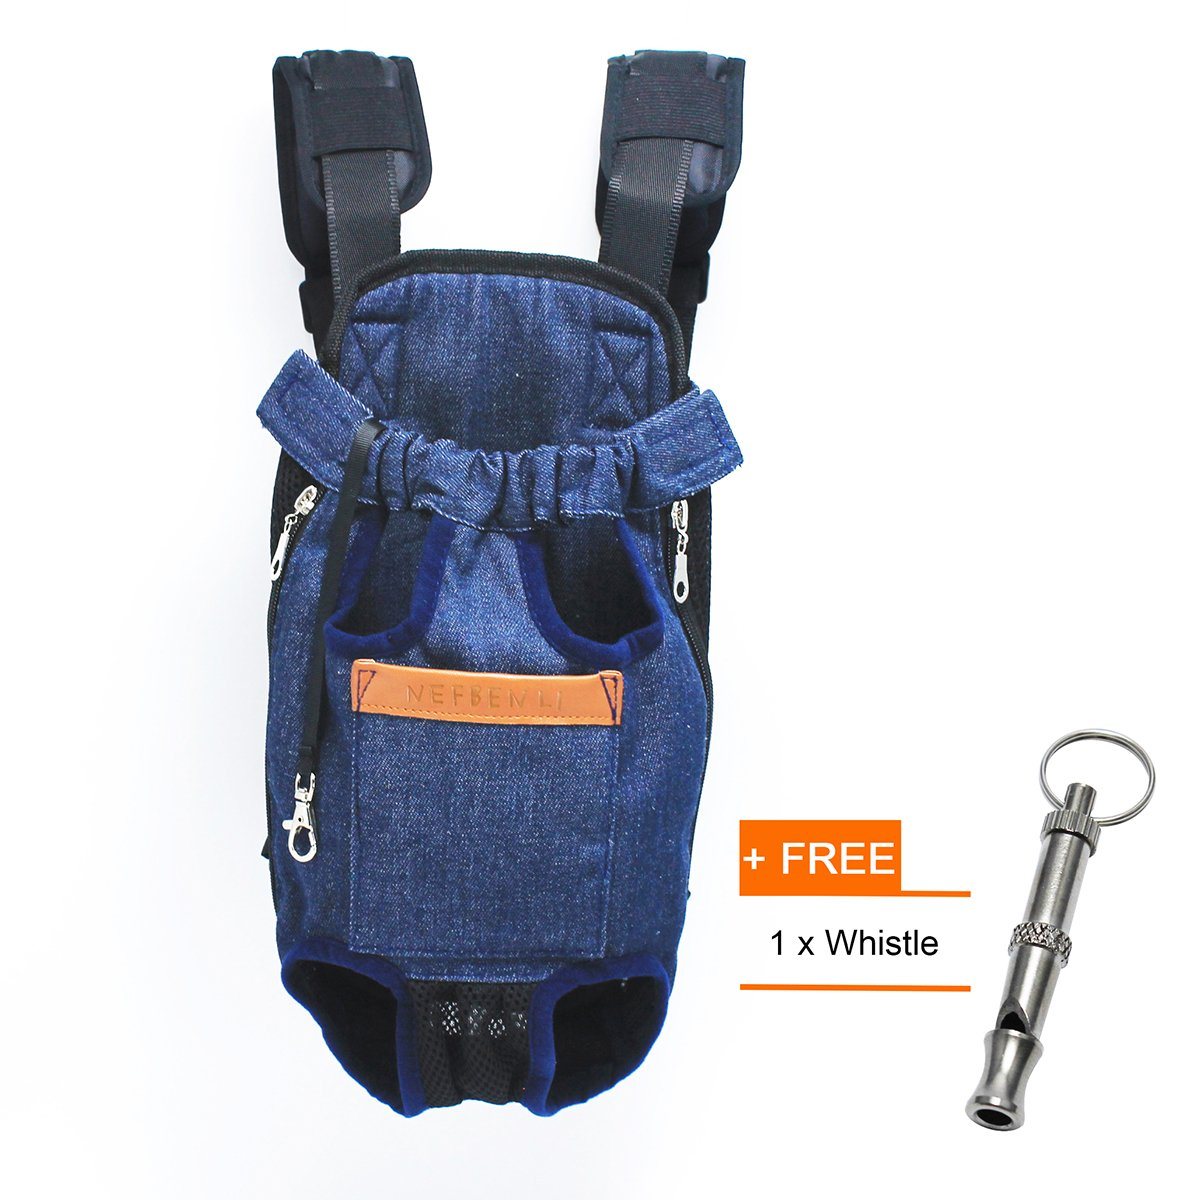 NEFBENLI Denim Blue Front Kangaroo Pouch Dog Carrier,Wide Straps Shoulder Pads,Adjustable Legs out Pet Backpack Carrier Walking,Travel,Hiking,Camping (X-Large) by NEFBENLI (Image #1)